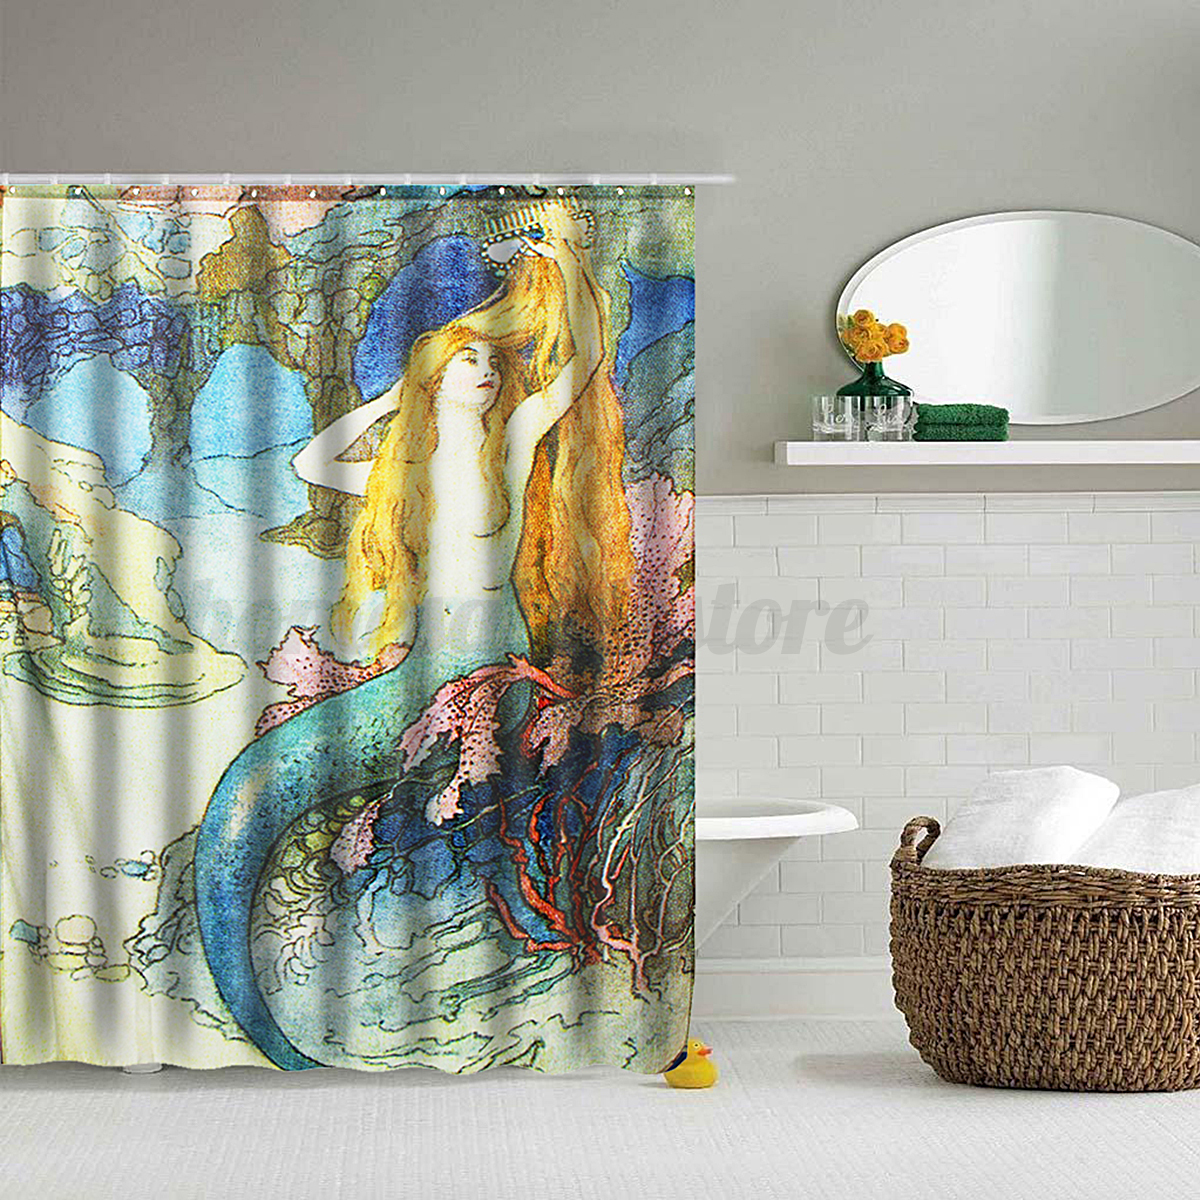 Details About Mermaid Panel Sheer Polyester Fabric Bathroom Shower Curtain Decor Hooks Set